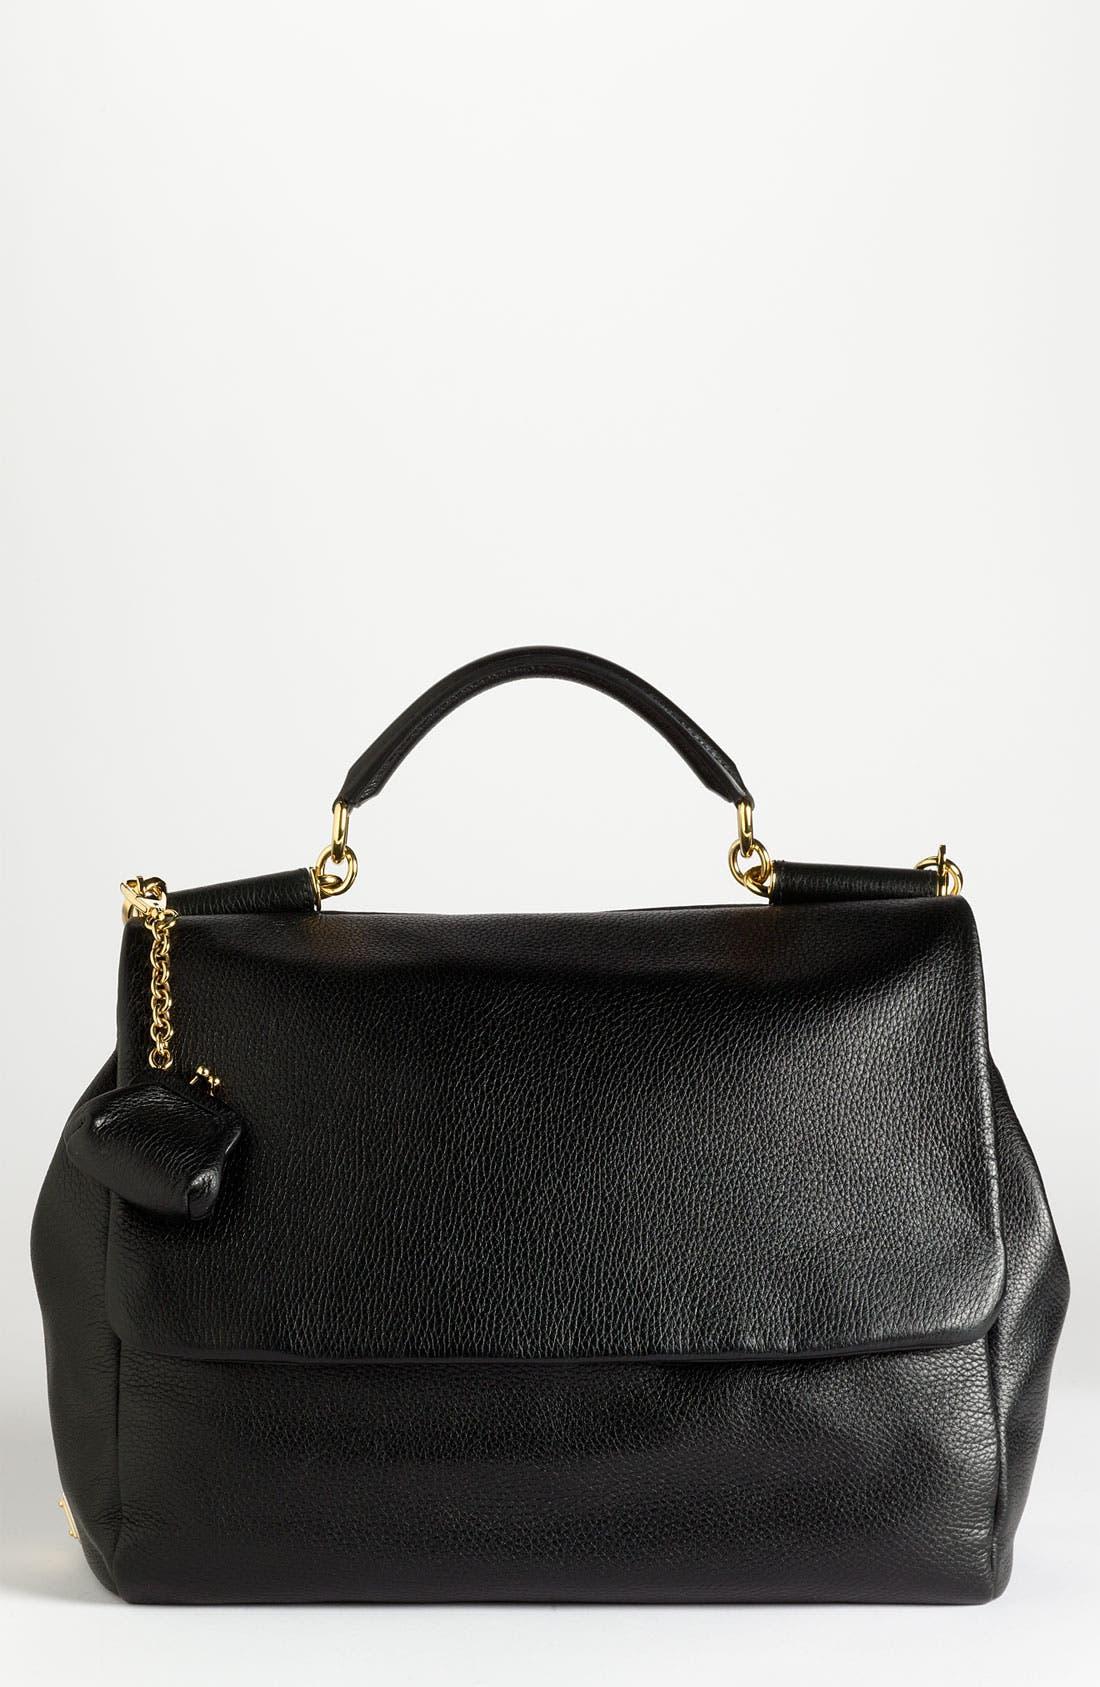 Main Image - Dolce&Gabbana 'Miss Sicily Soft' Leather Satchel